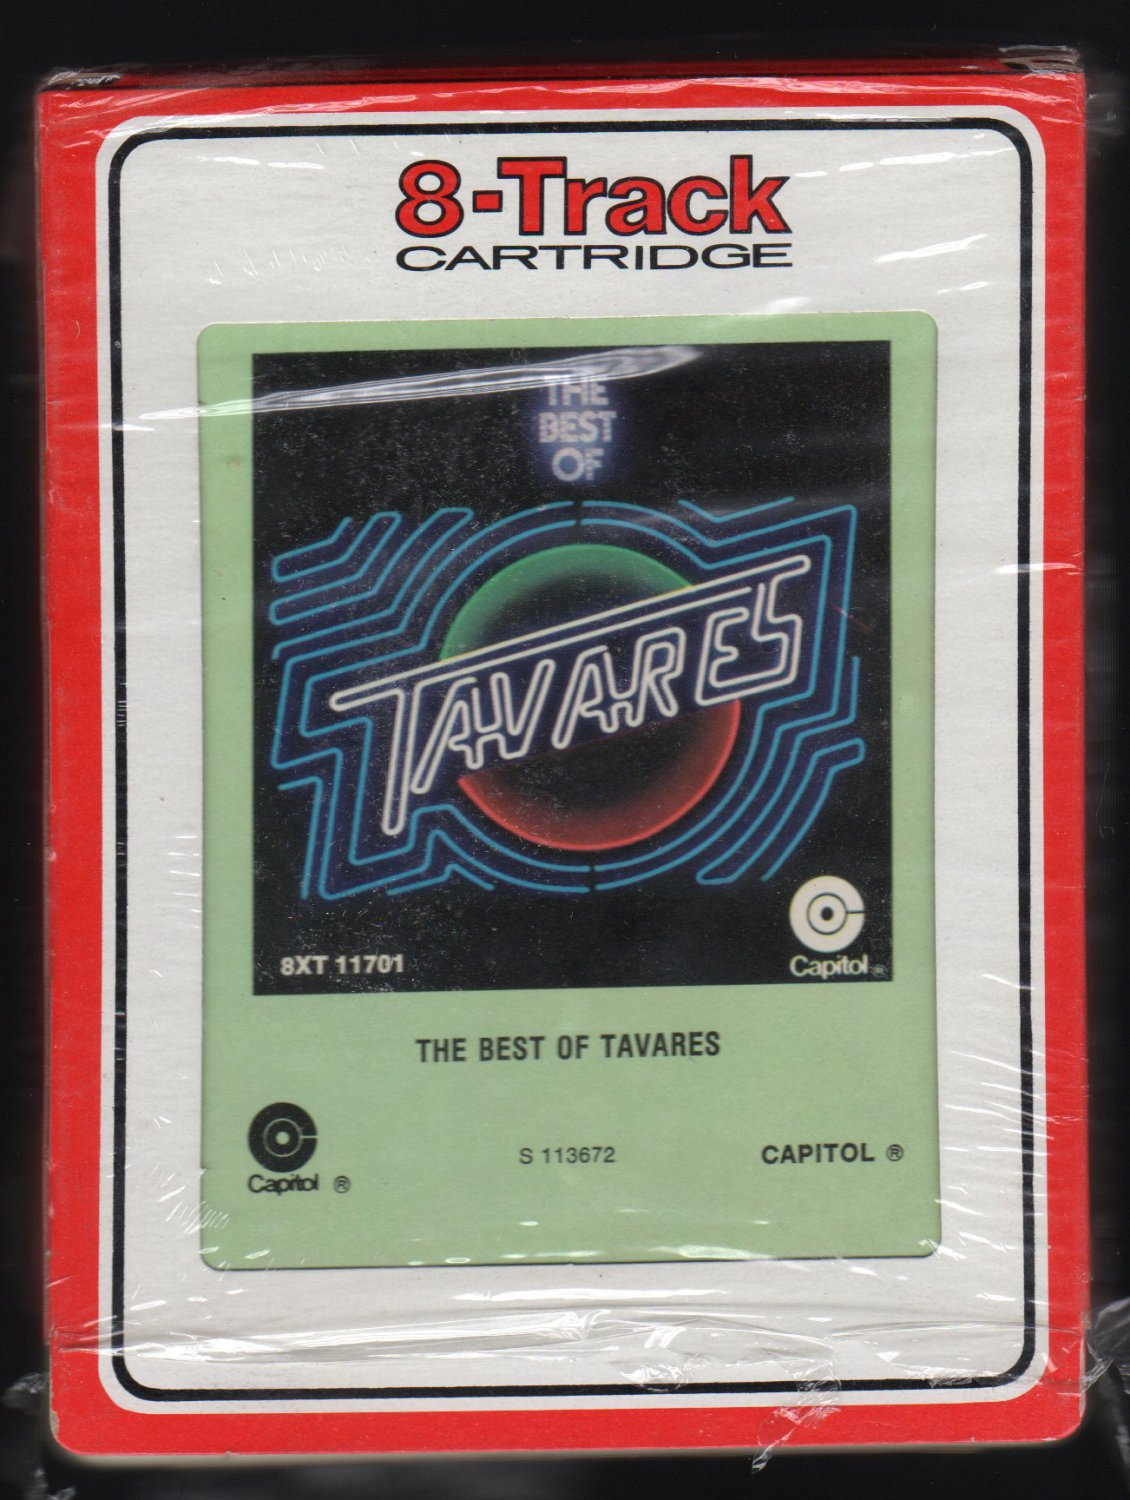 Tavares - The Best Of 1977 RCA CAPITOL A2 8-TRACK TAPE